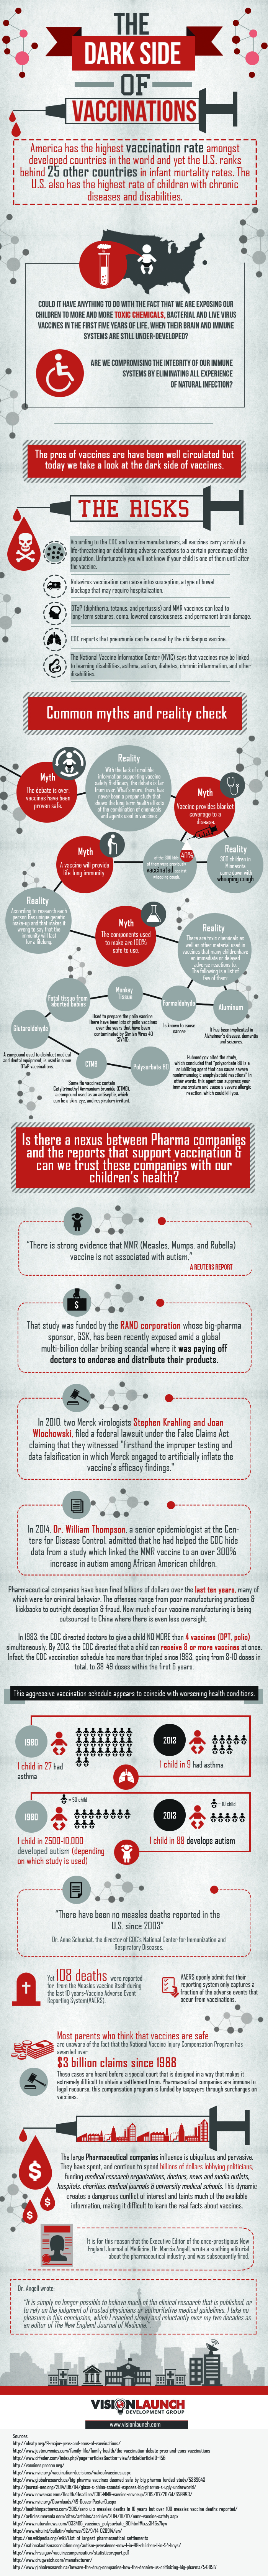 visionlaunch The Dark side of vaccination infographic